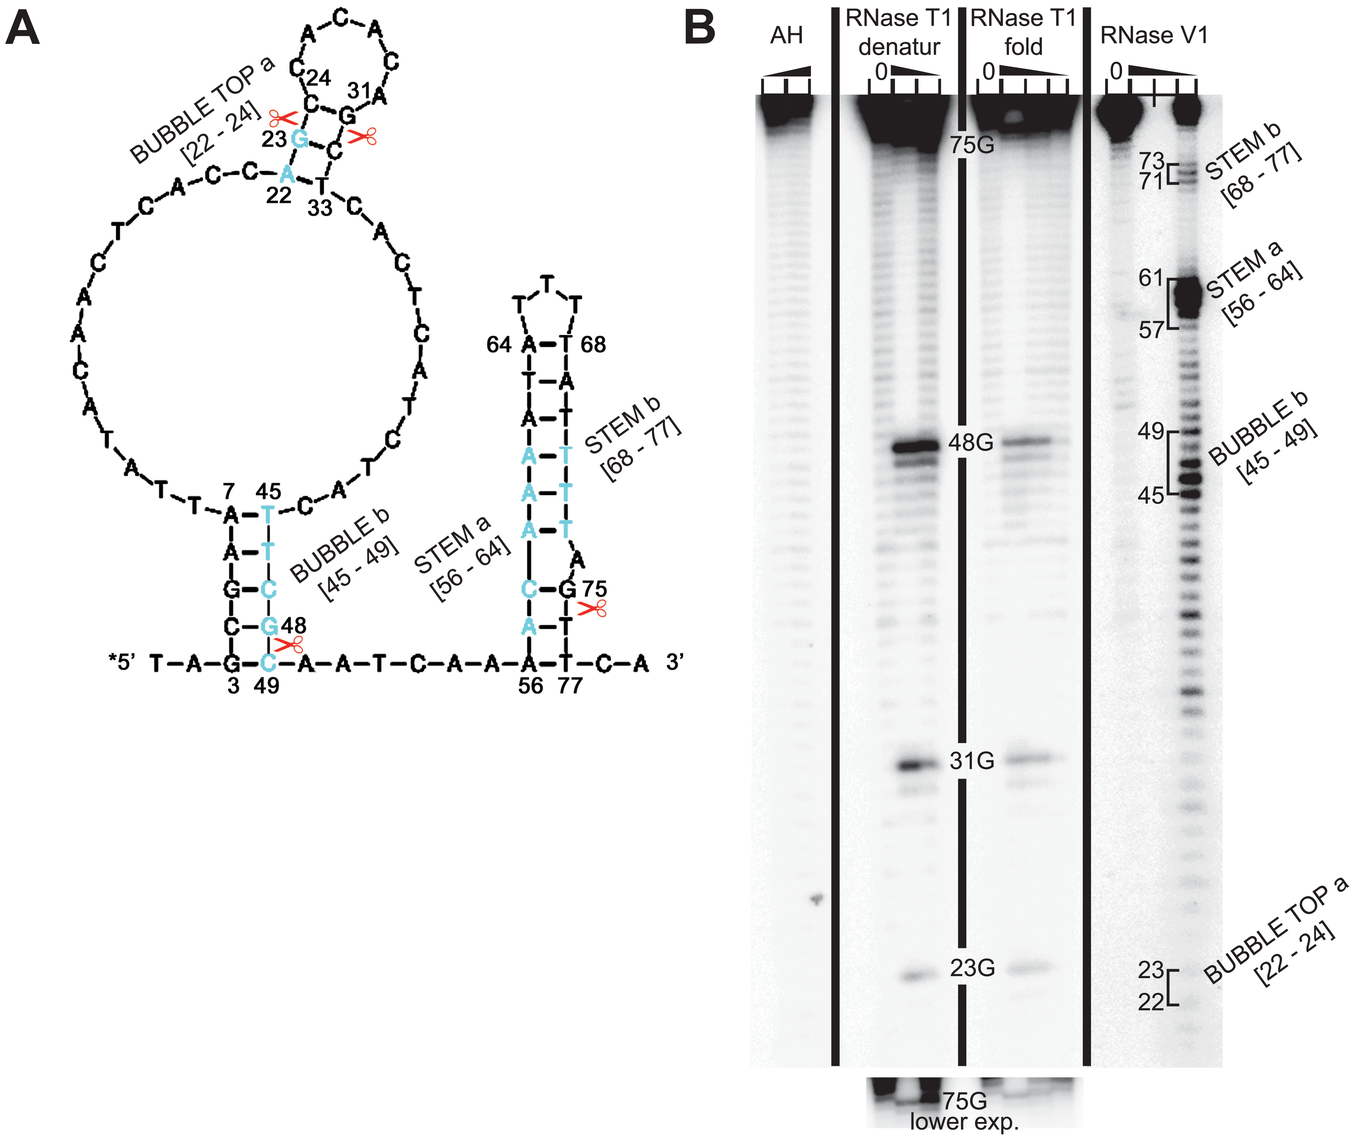 RNA structure probing of the 5′ enhancer of uORF1.